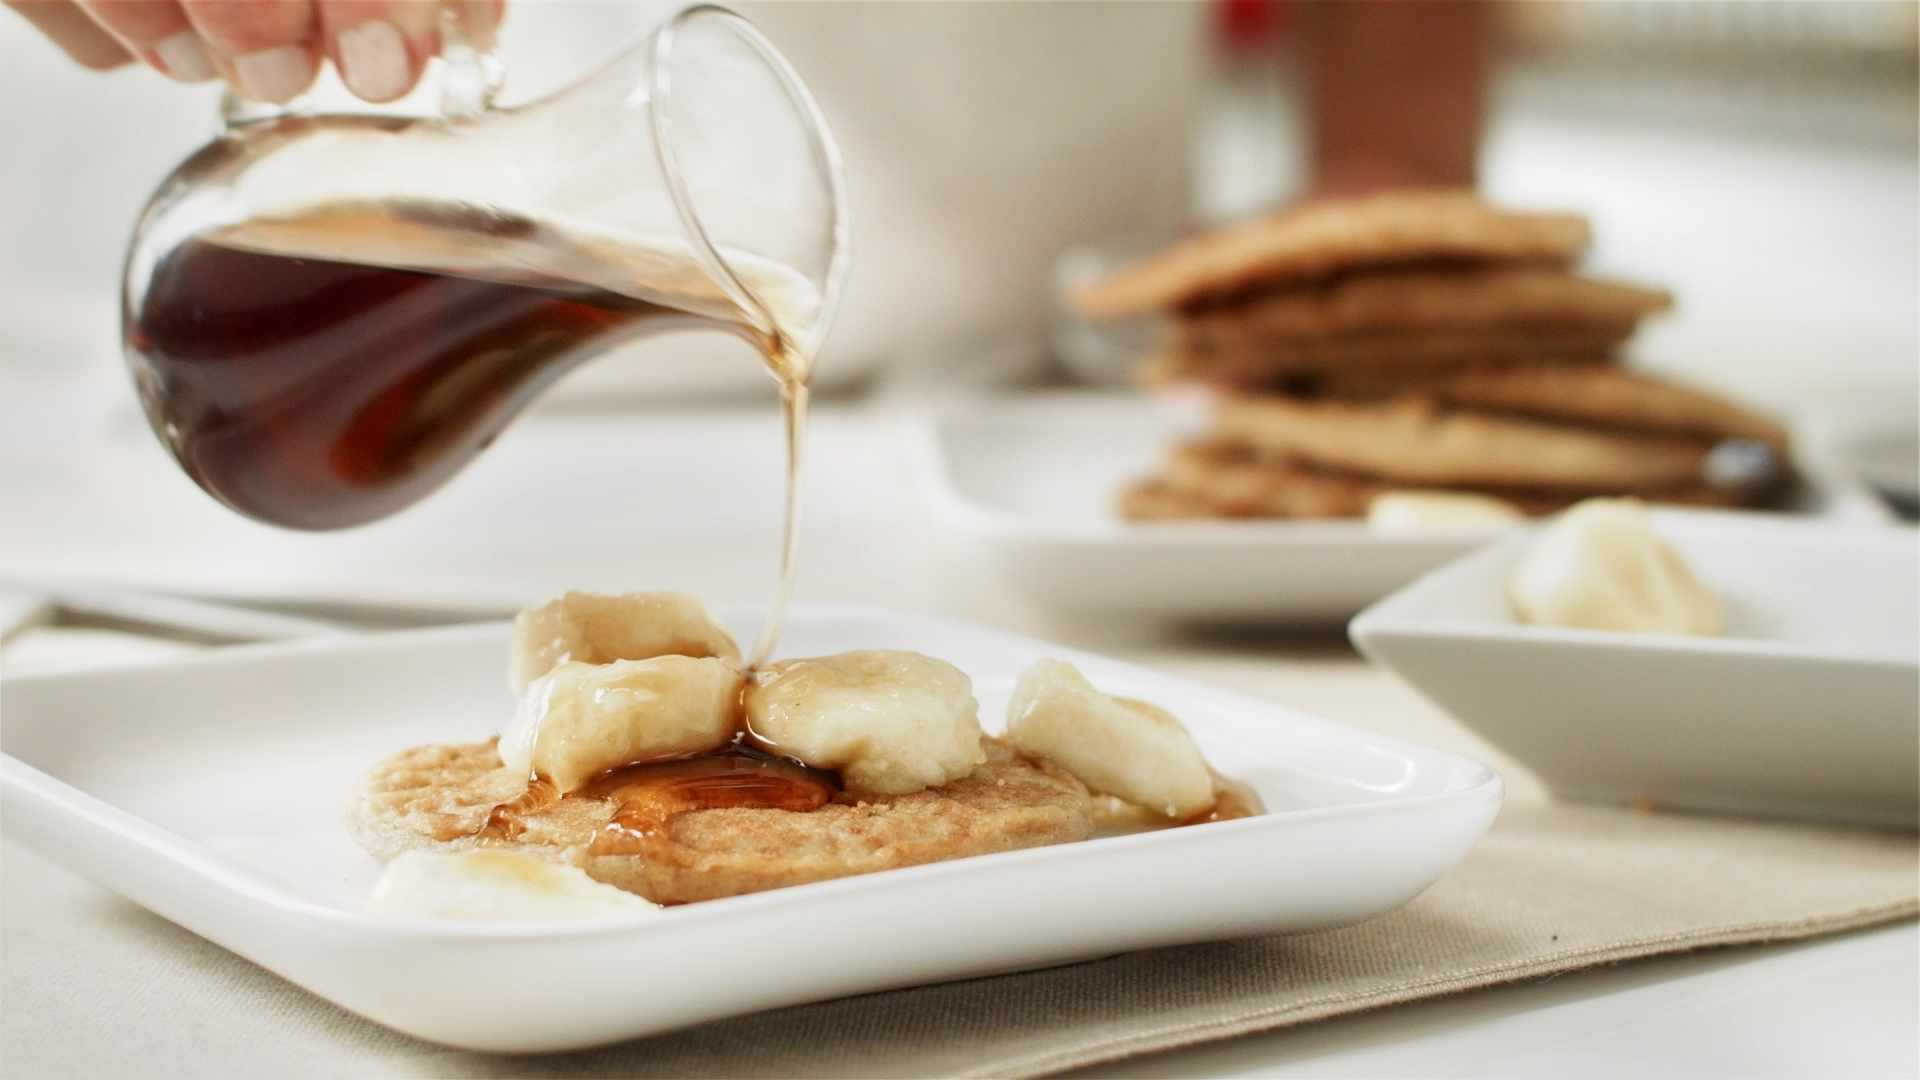 making-mayo-recipes-oatmeal-banana-pancake-16-x-9